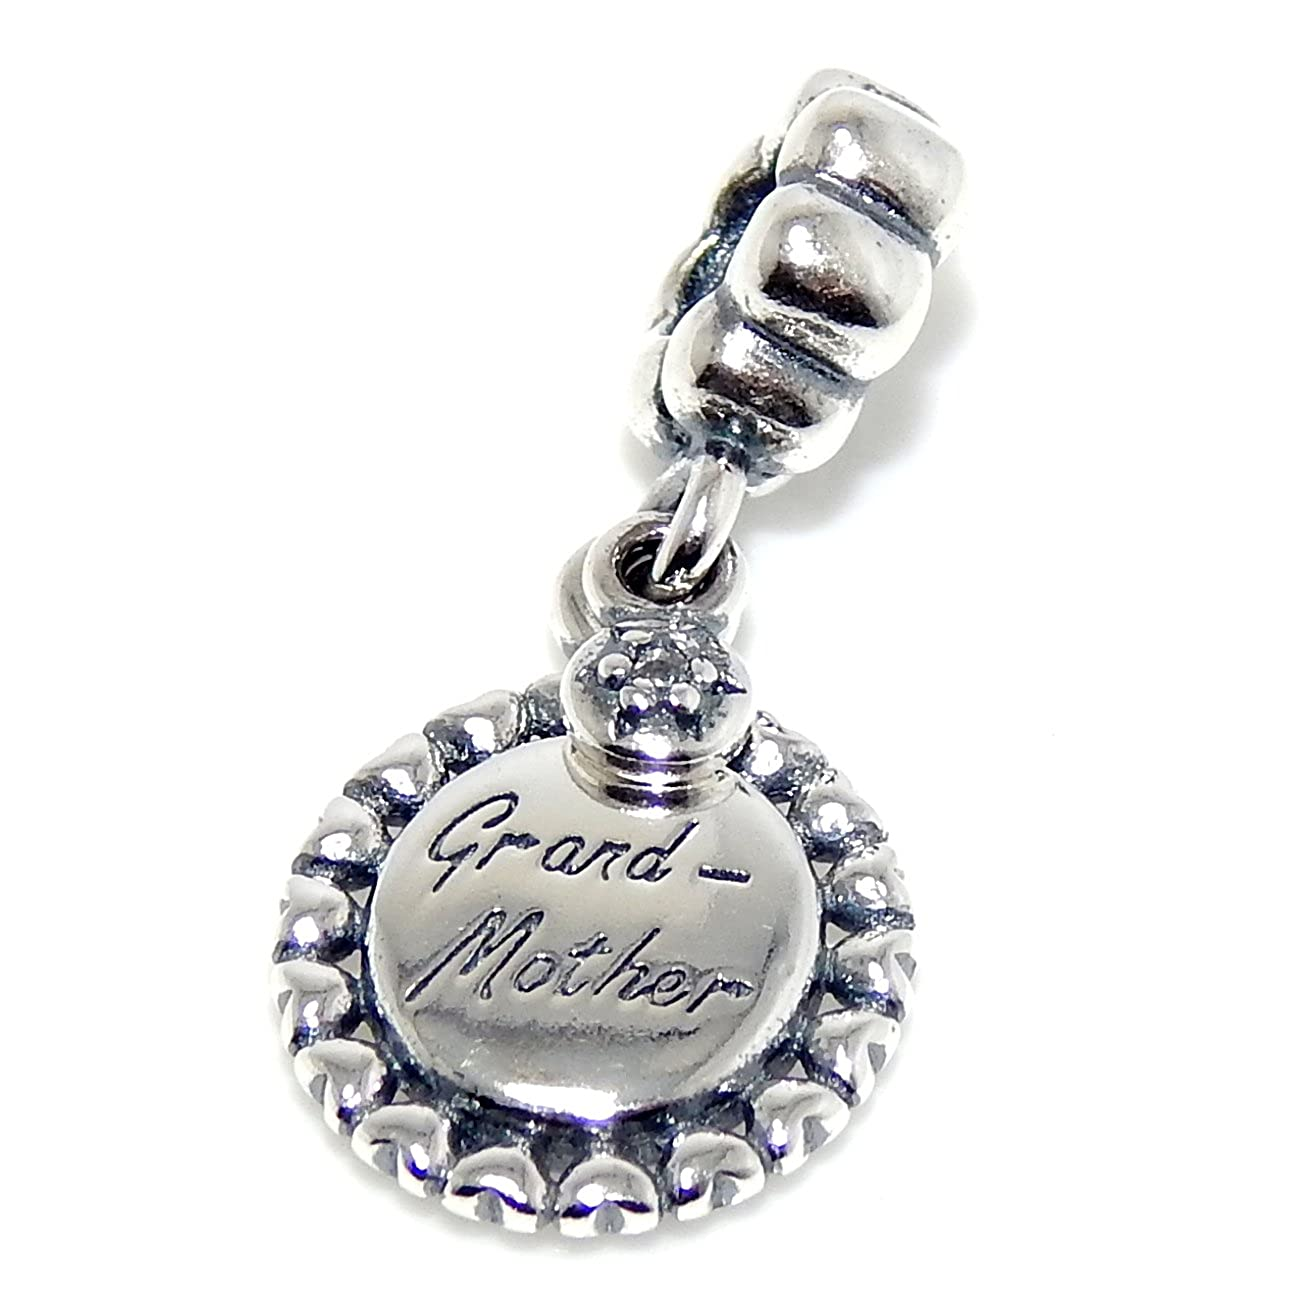 ICYROSE Solid 925 Sterling Silver Dangling Grandmother Pendant Charm Bead 355 for European Snake Chain Bracelets